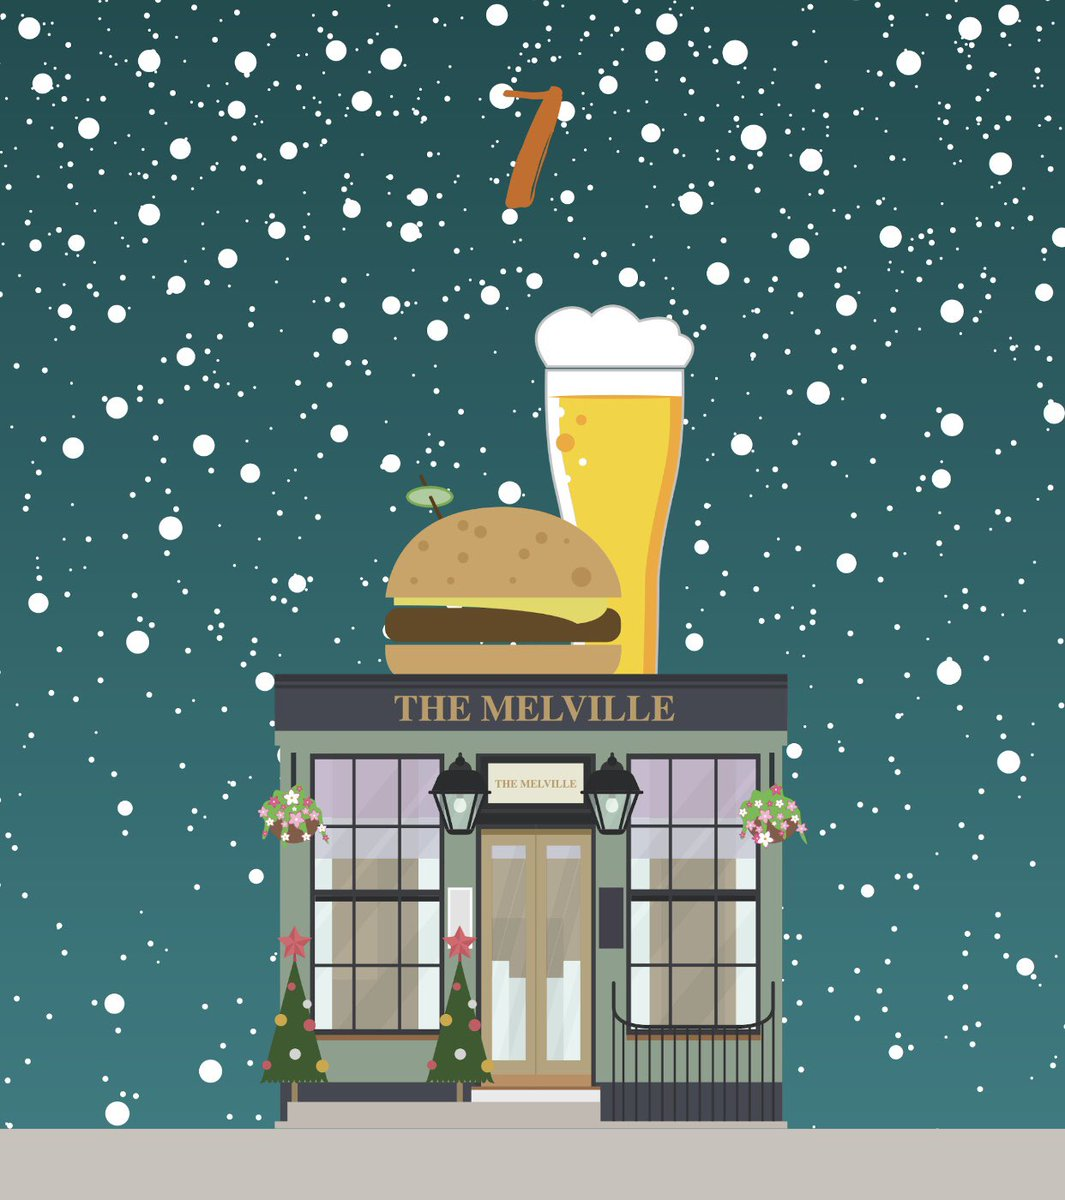 #StepIntoTheWestEnd 🎄✨ It's Day 7 of our Advent Calendar/Stamp Card Competition. Simply spend in store to collect a stamp. Collect 12 out of the 26 stamps to be in the running to win a Christmas Hamper worth over £1,000 (T's and C's apply)  @TheMelvilleBar 🍔🍺   #hiddengems